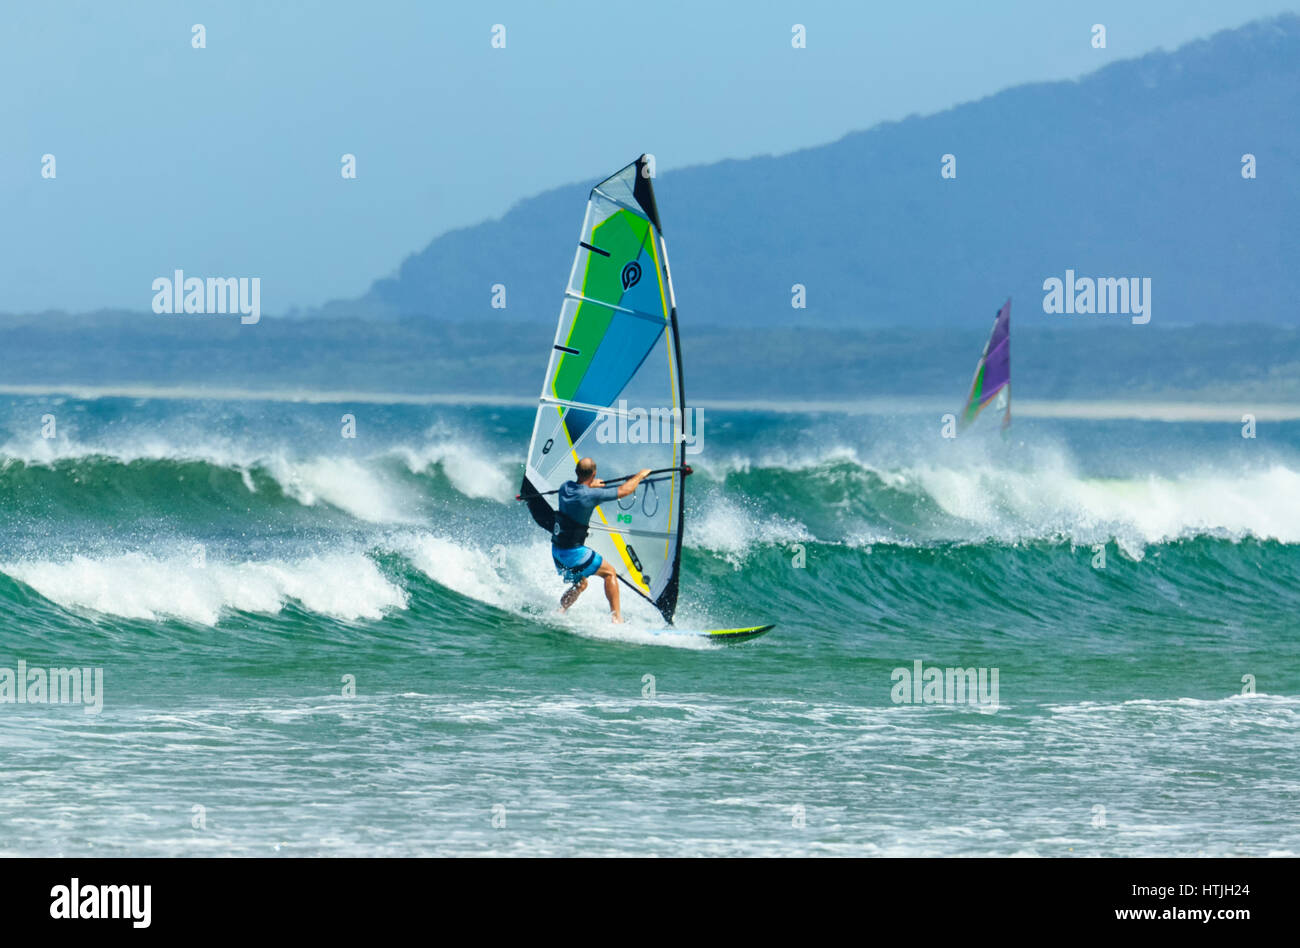 Windsurfer Surfen in schwerer See mit großen Wellen am Seven Mile Beach, Gerroa, Illawarra Coast, New-South.Wales, Stockbild